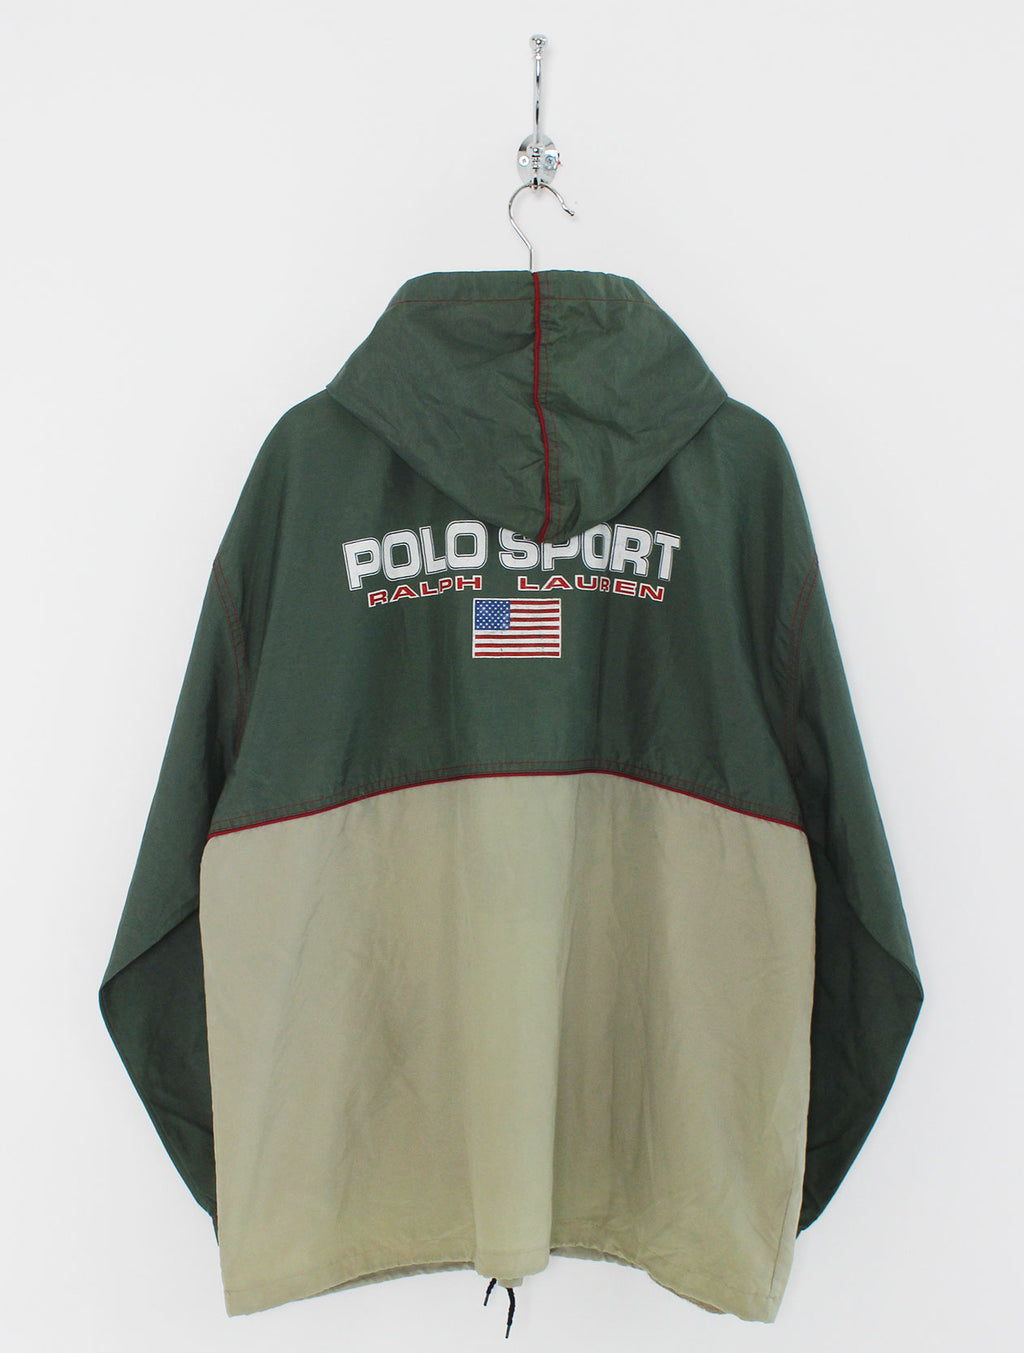 Ralph Lauren Polo Sport Windbreaker (L)